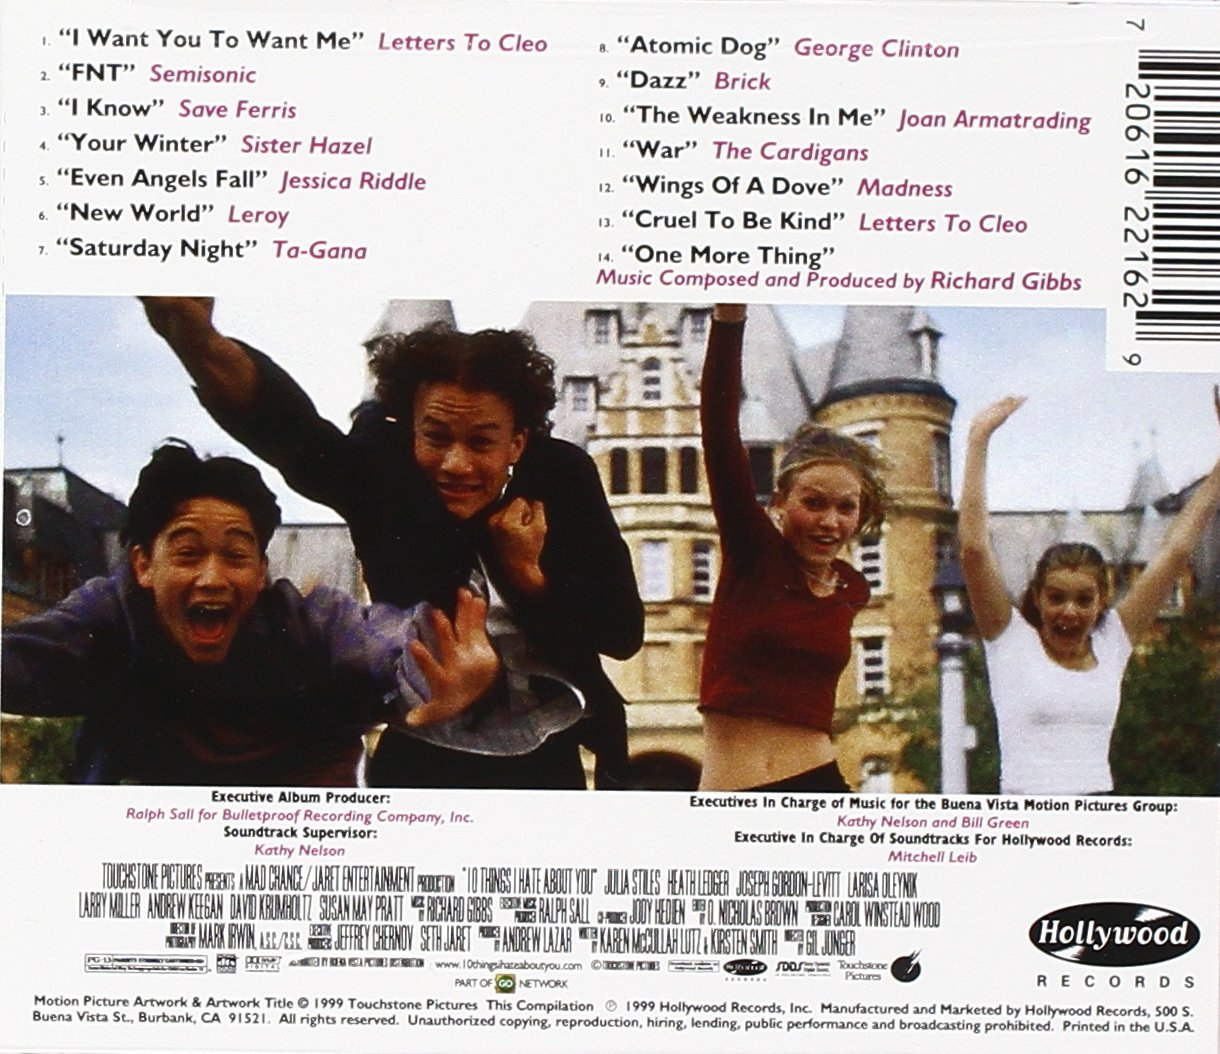 Richard Gibbs, Various Artists - 10 Things I Hate About You: Music From The Motion Picture - Amazon.com Music